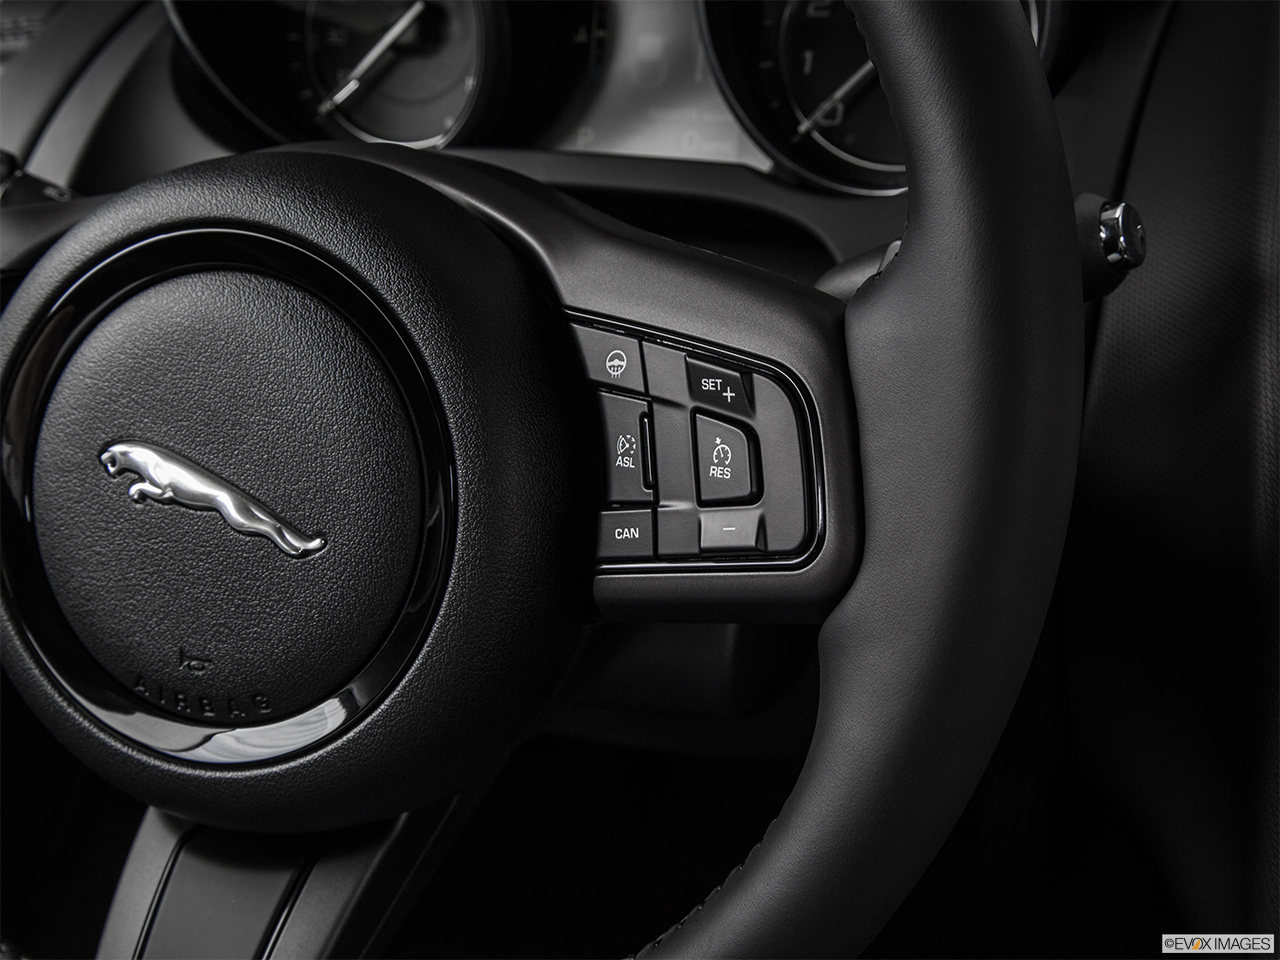 2015 Jaguar F-Type Coupe Base Steering Wheel Controls (Right Side)